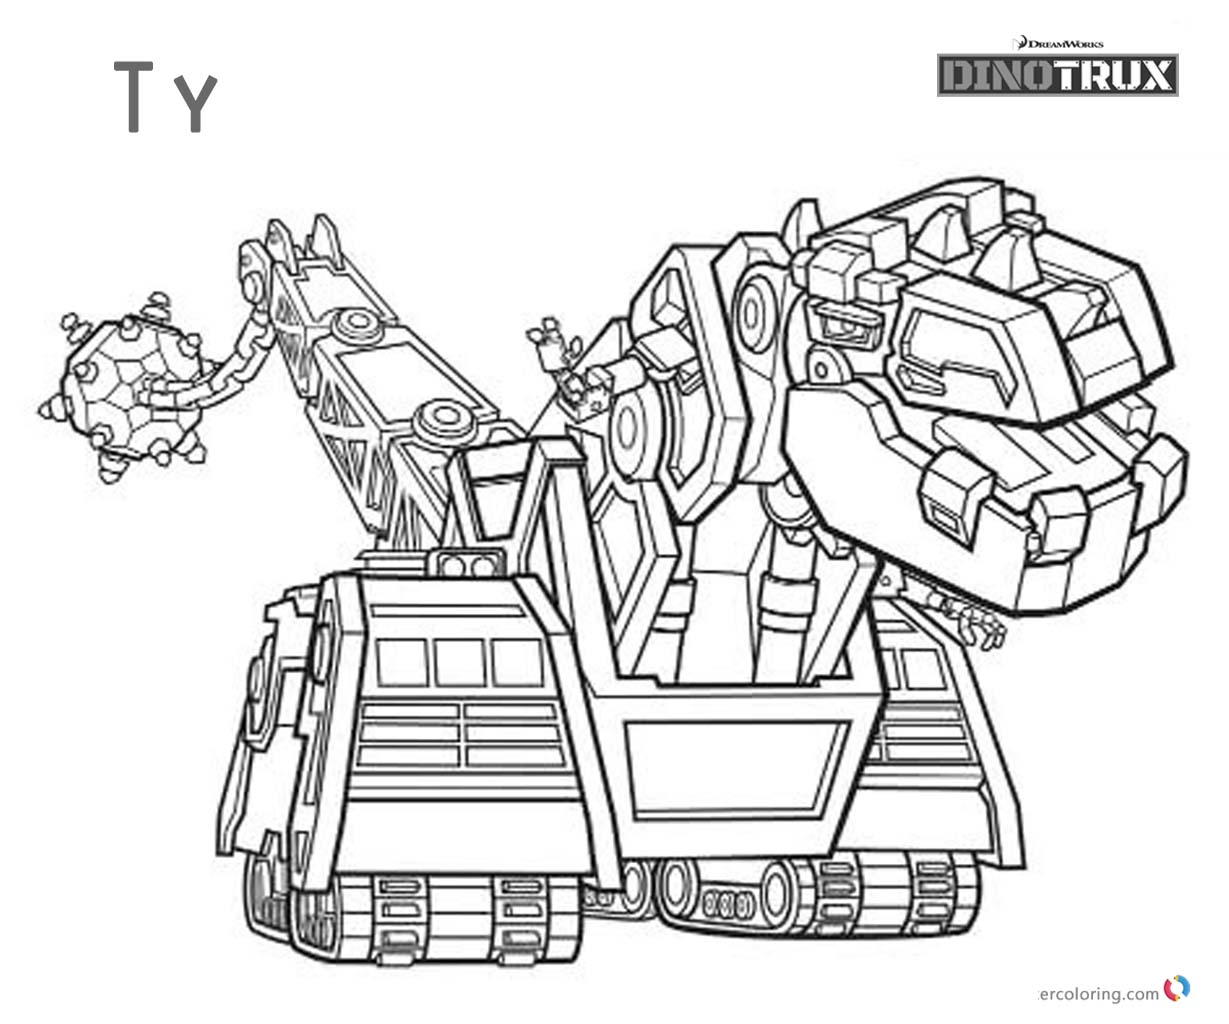 Dinotrux coloring pages Ty black and white - Free ...